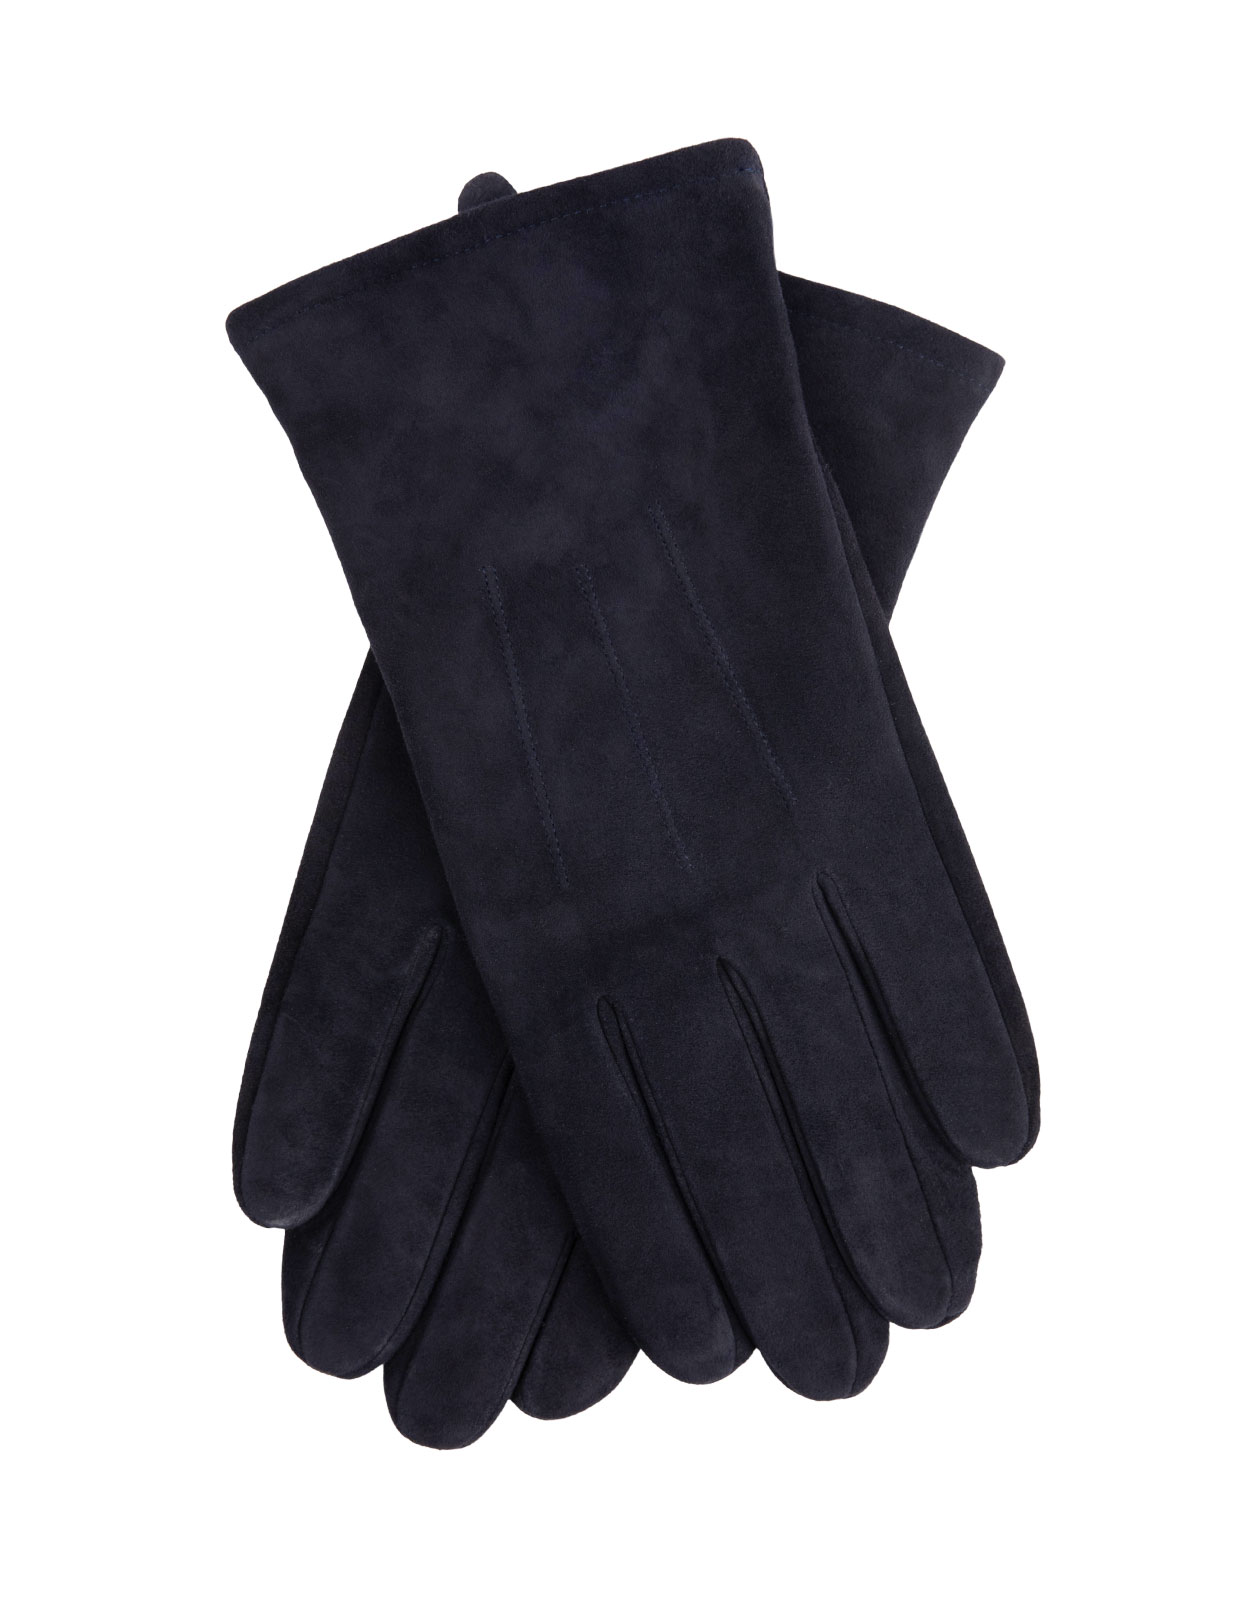 Goatsuede Gloves Navy Stl 8.5